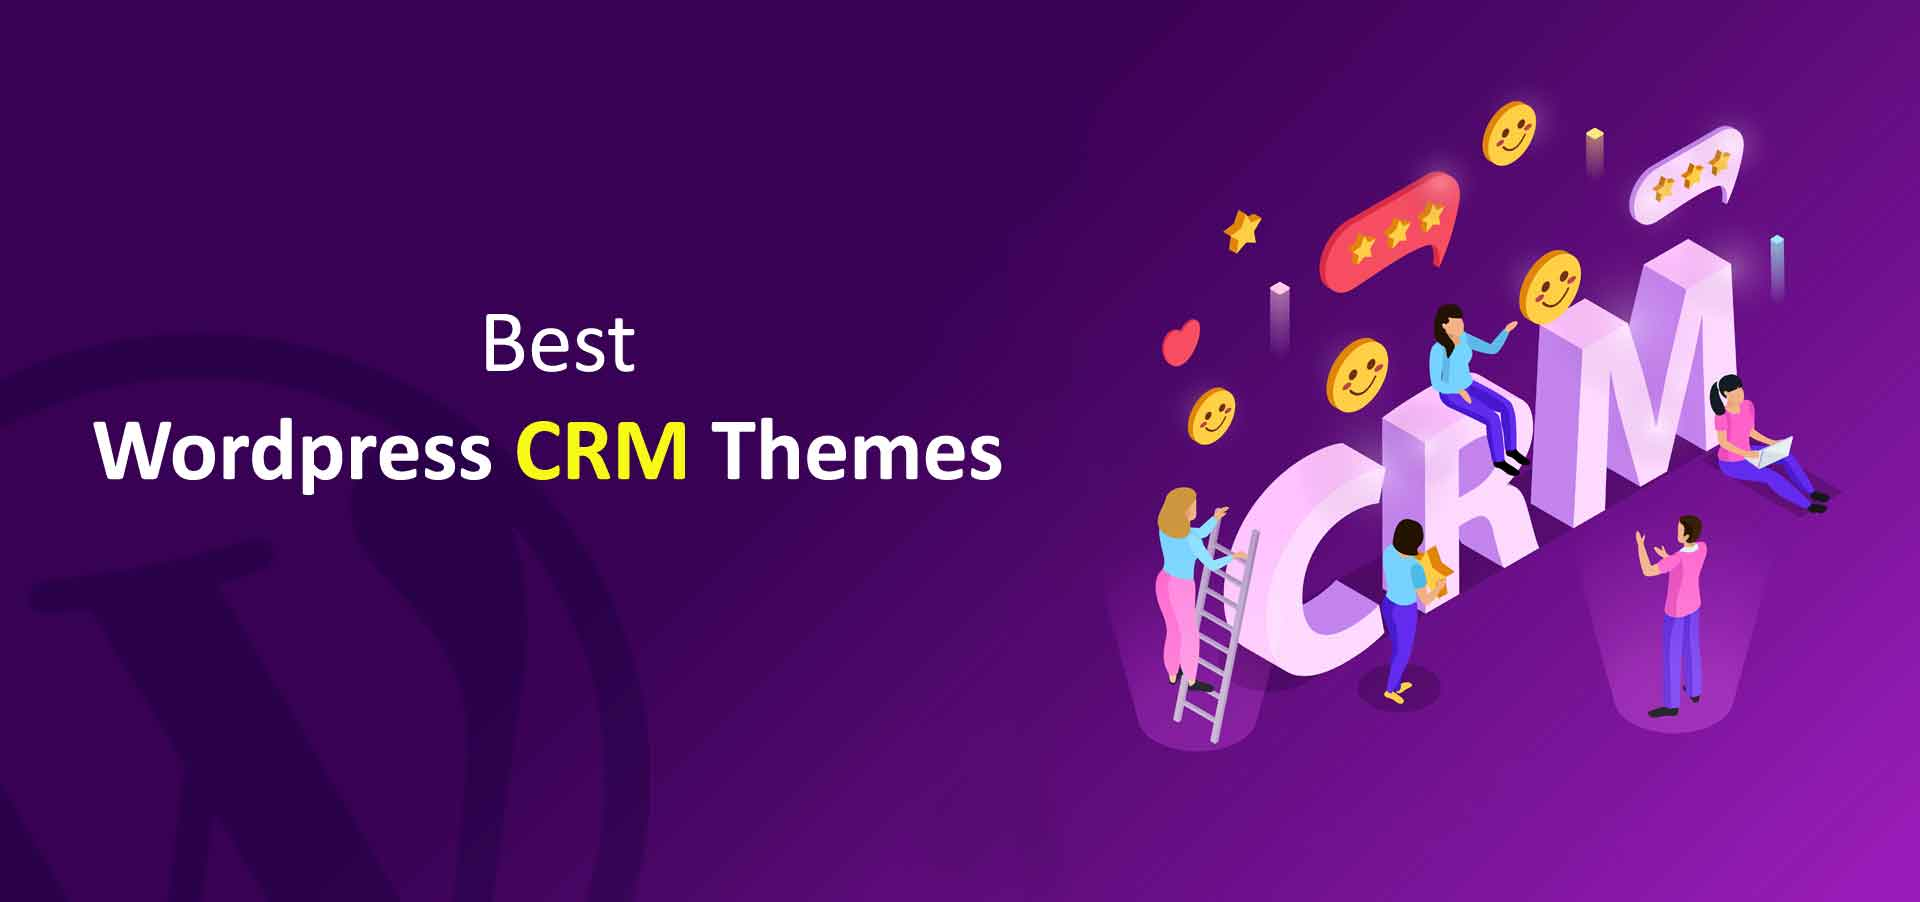 Wordpress CRM Themes